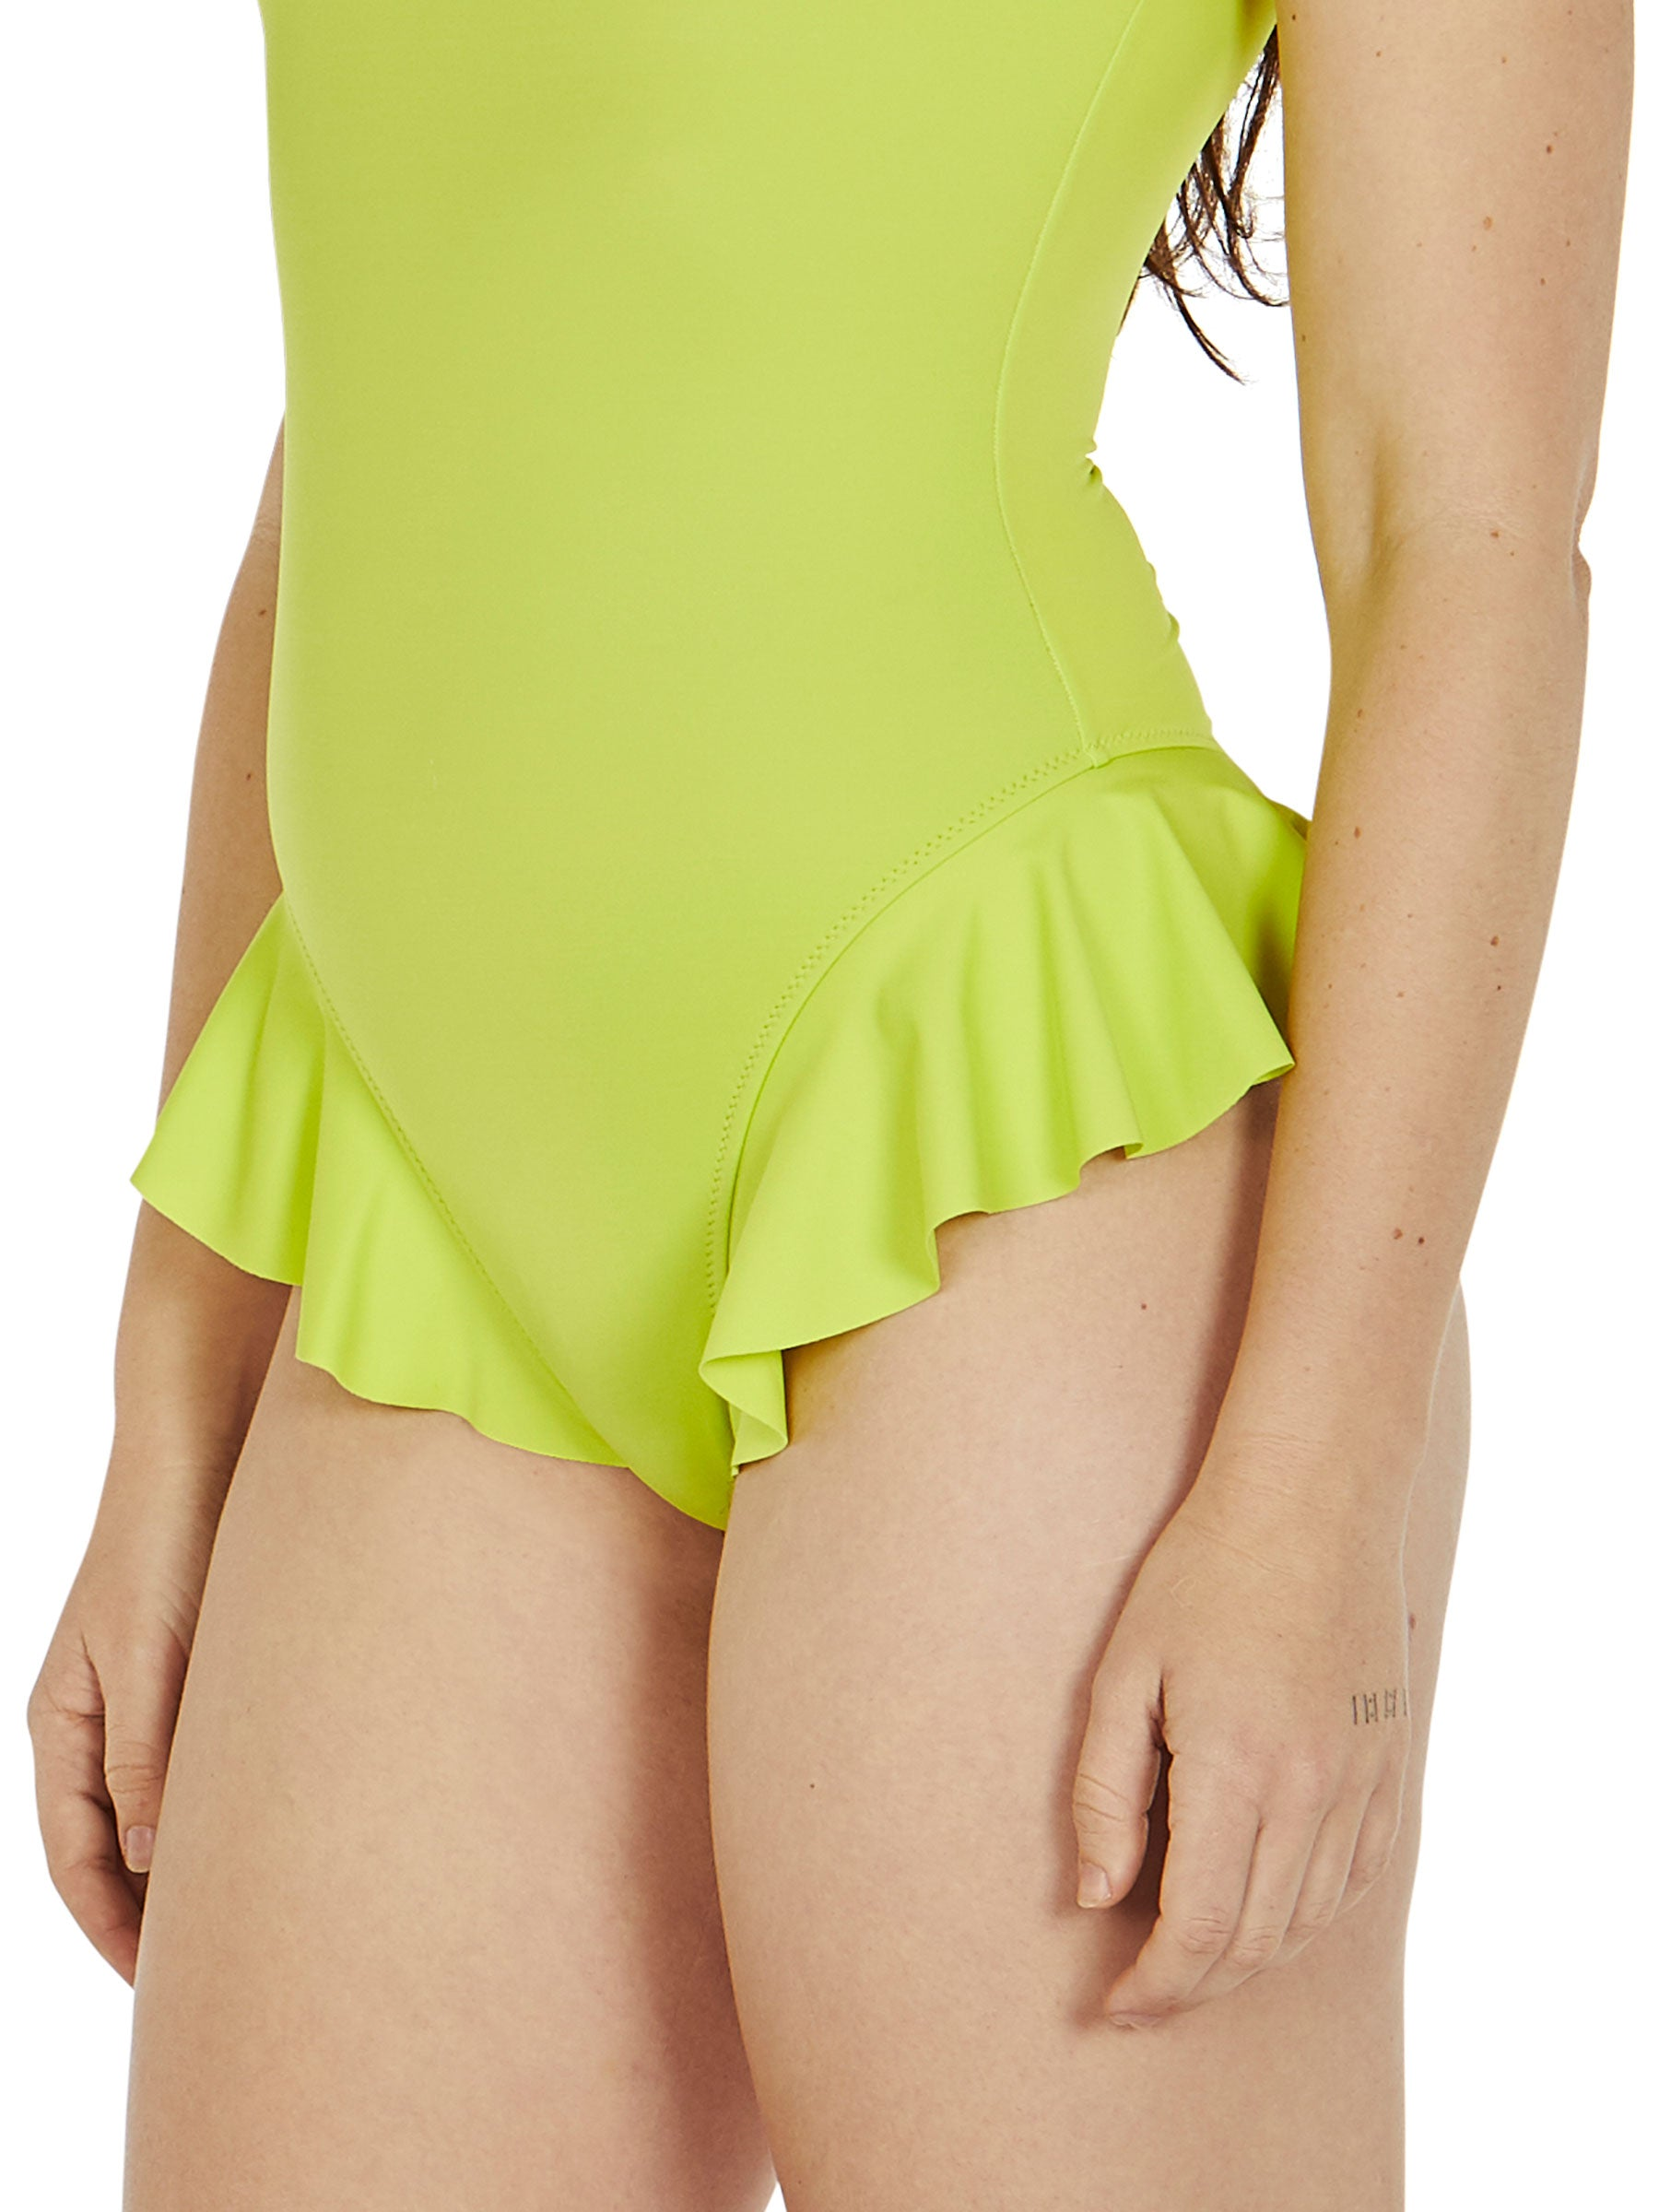 odd92 Fantabody Acid Green Erika Swimsuit Spring/Summer 2019 Womenswear - 5